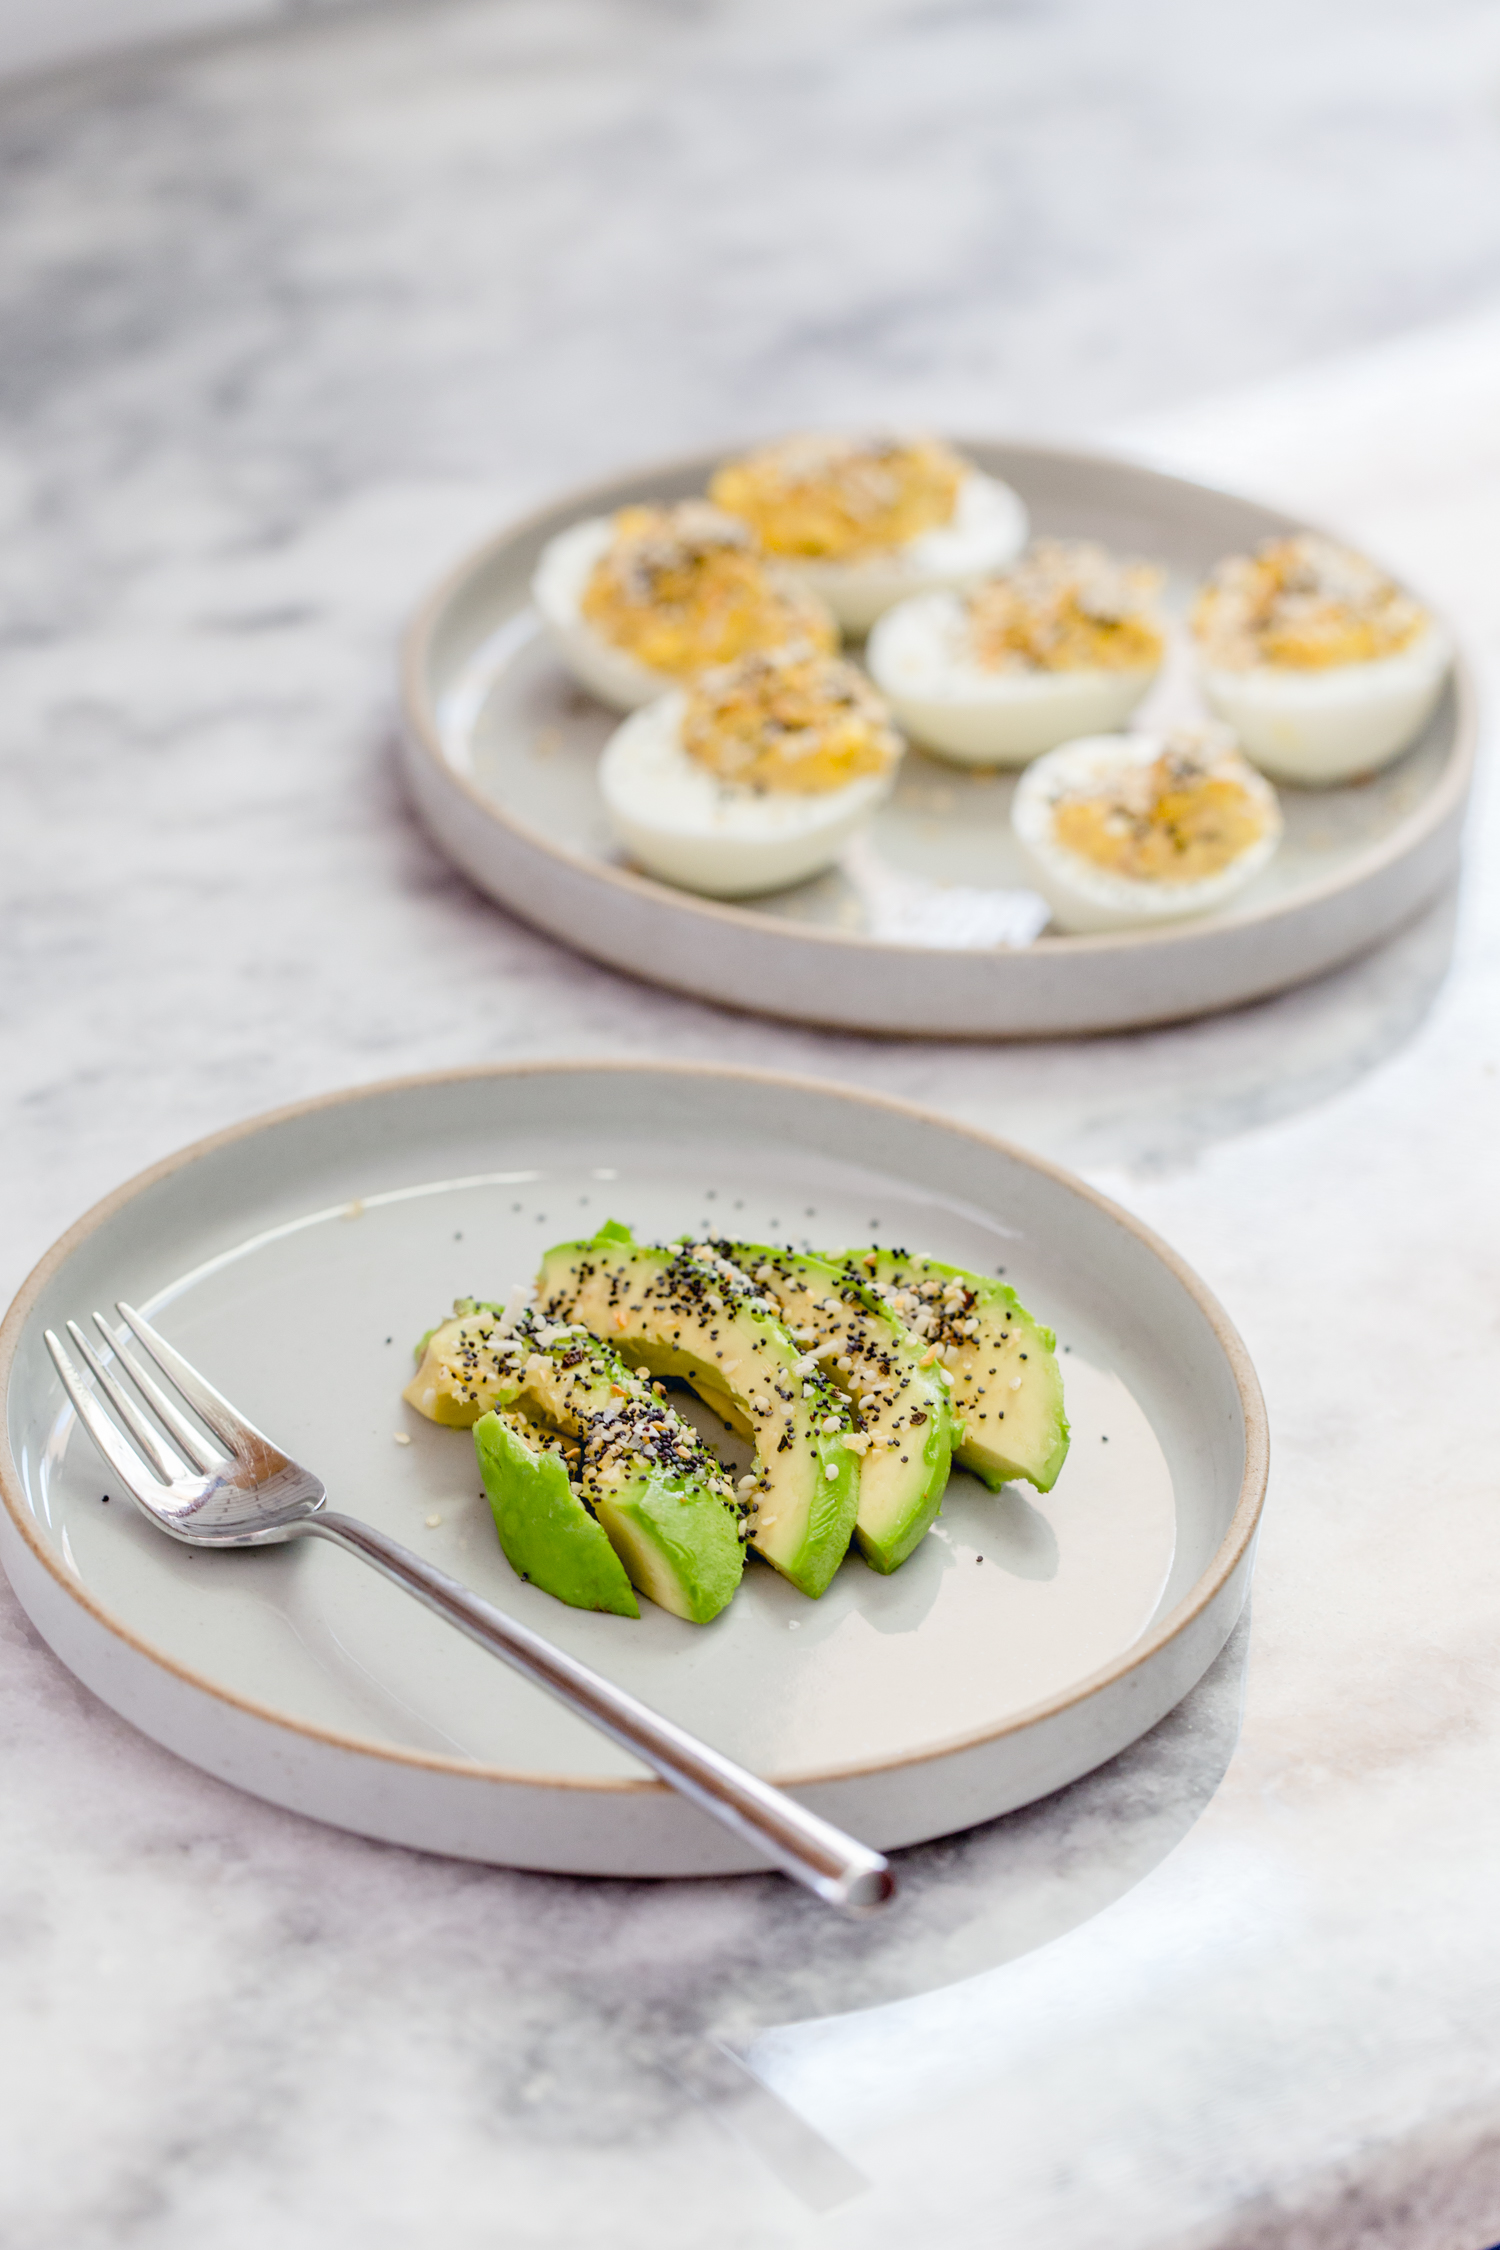 plate with sliced avocado and a plate with deviled eggs